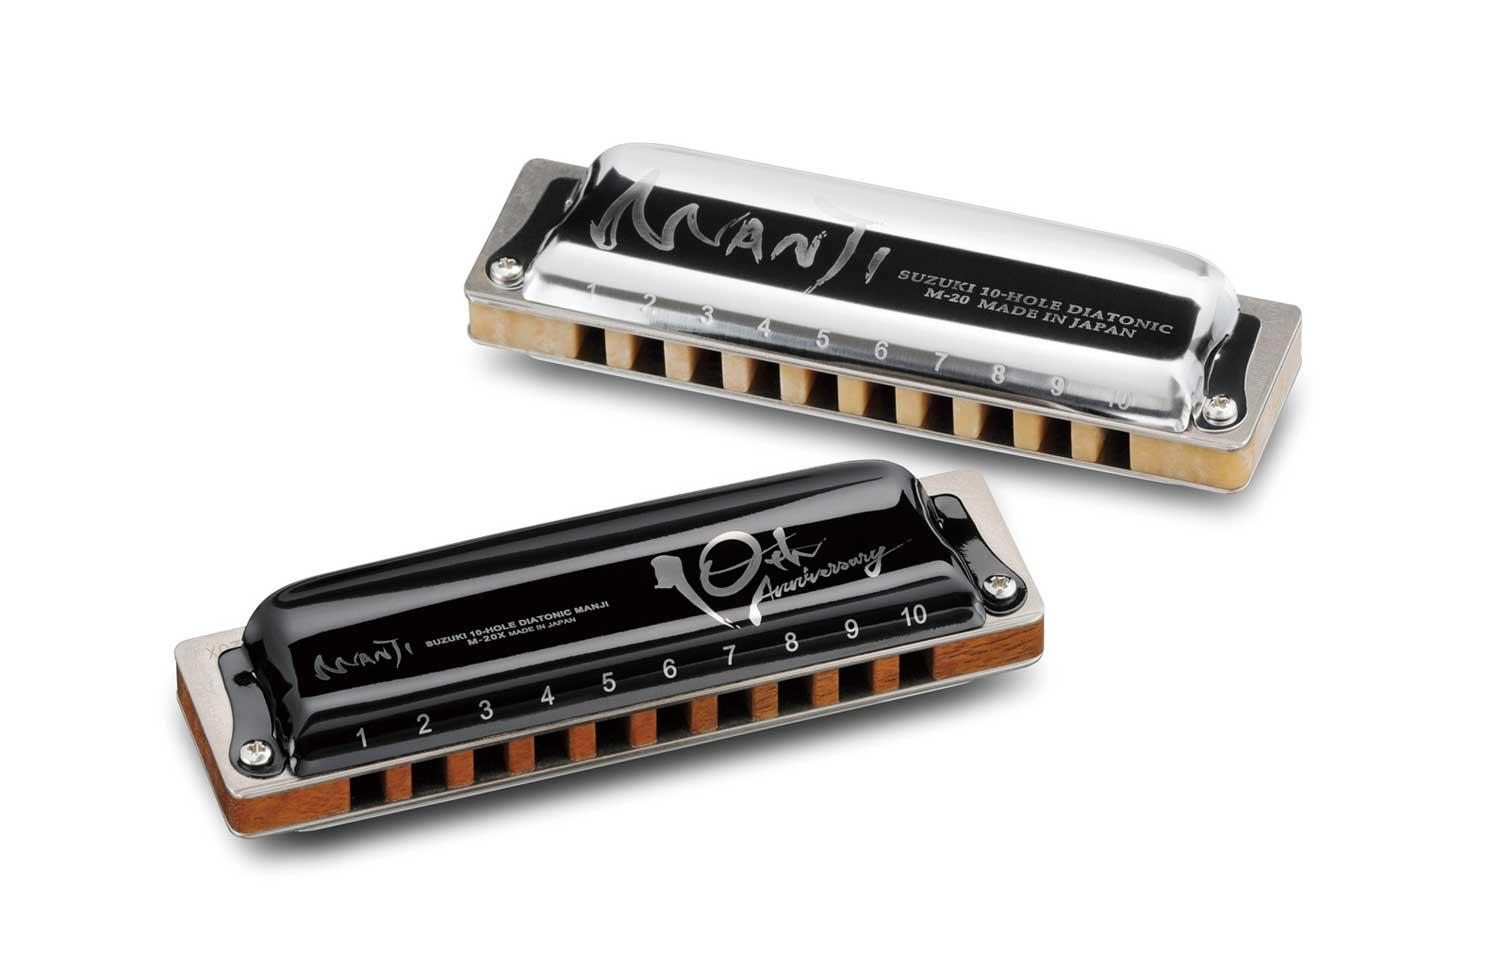 MANJI M-20 10th Anniversary Model - M-20X harmonica and old model